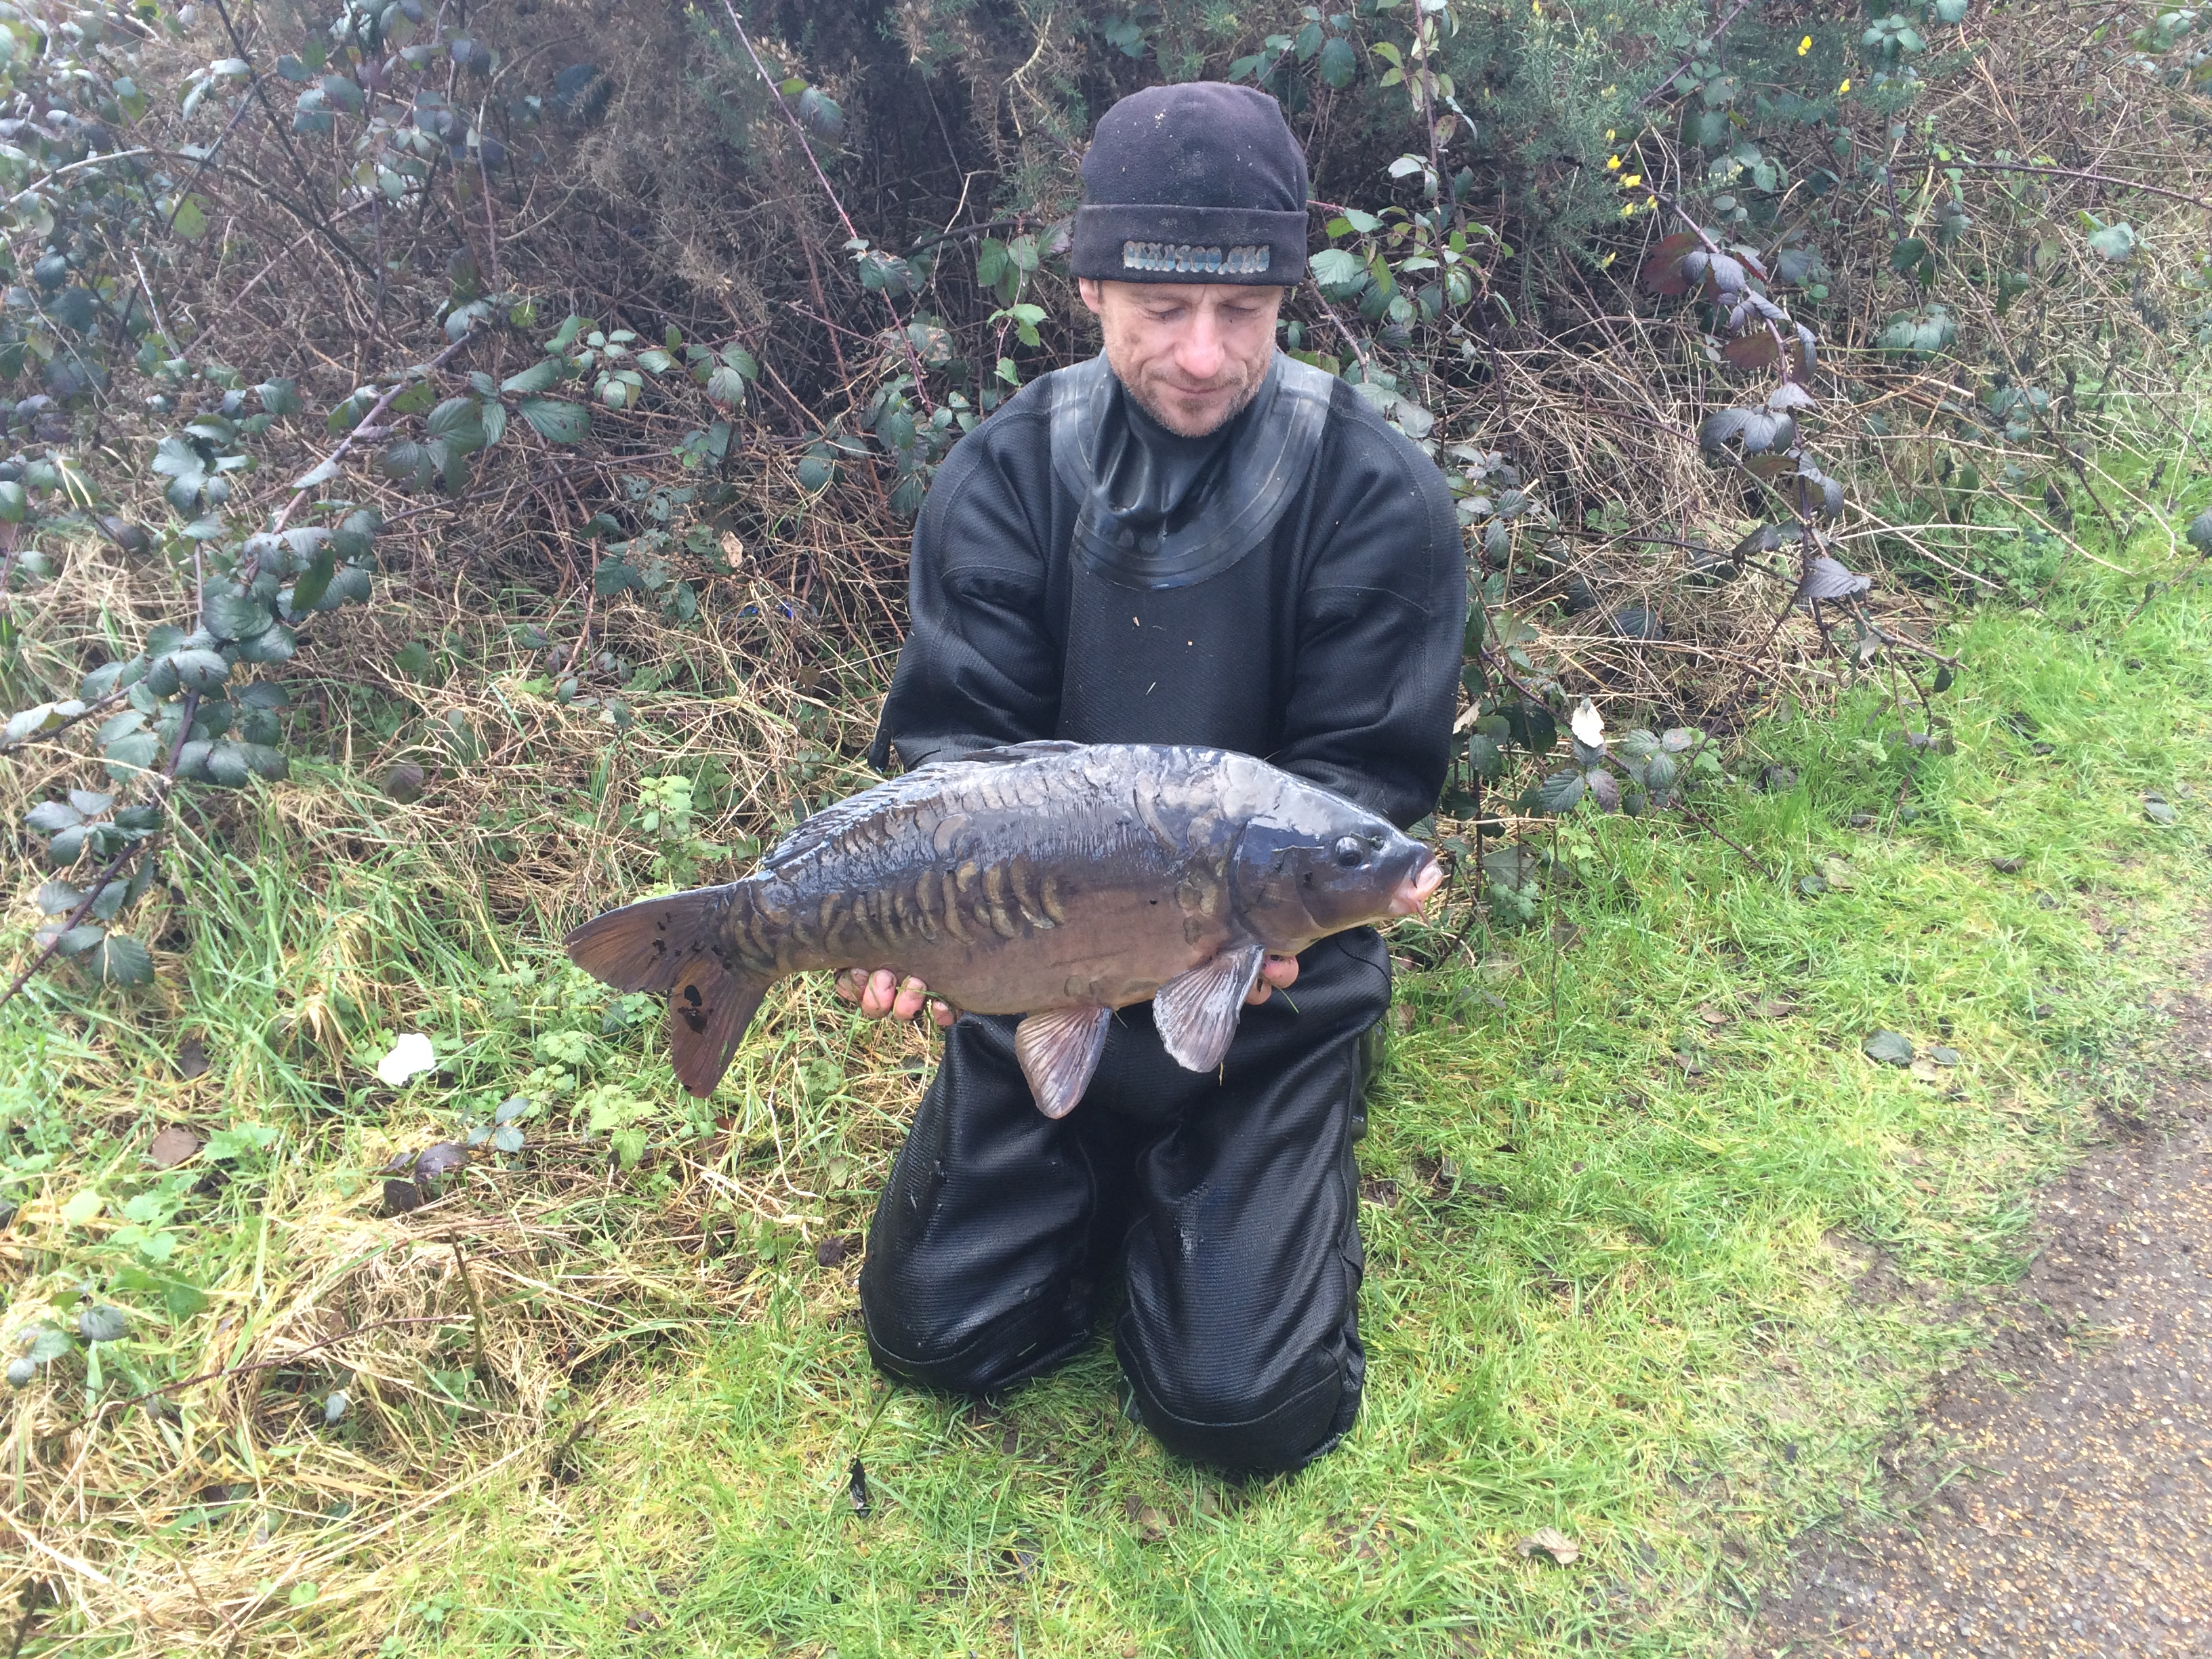 10lb mirror caught during draindown